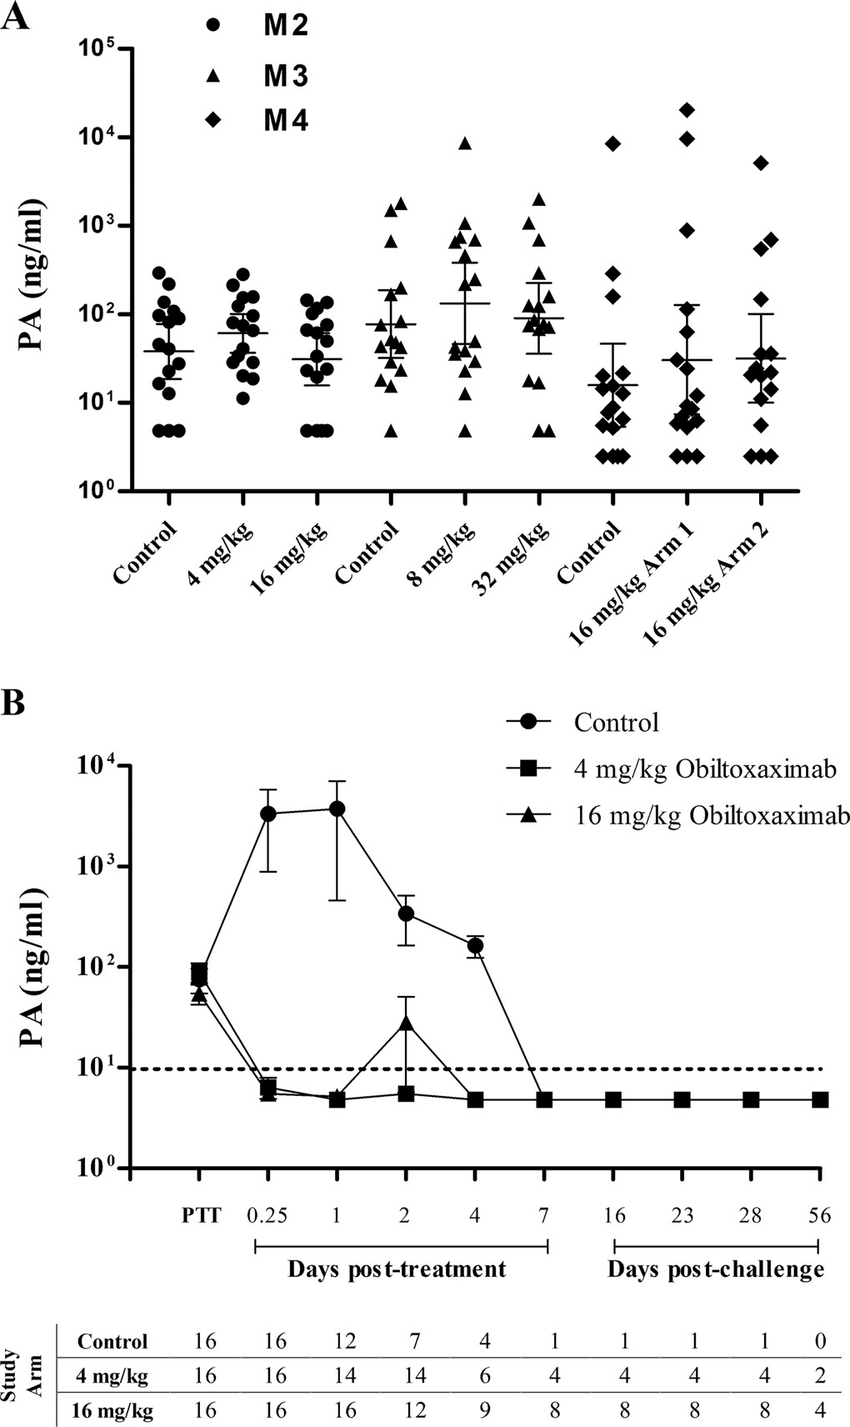 medium resolution of toxin neutralization with obiltoxaximab confers survival benefit in the treatment of inhalational anthrax nzw rabbits